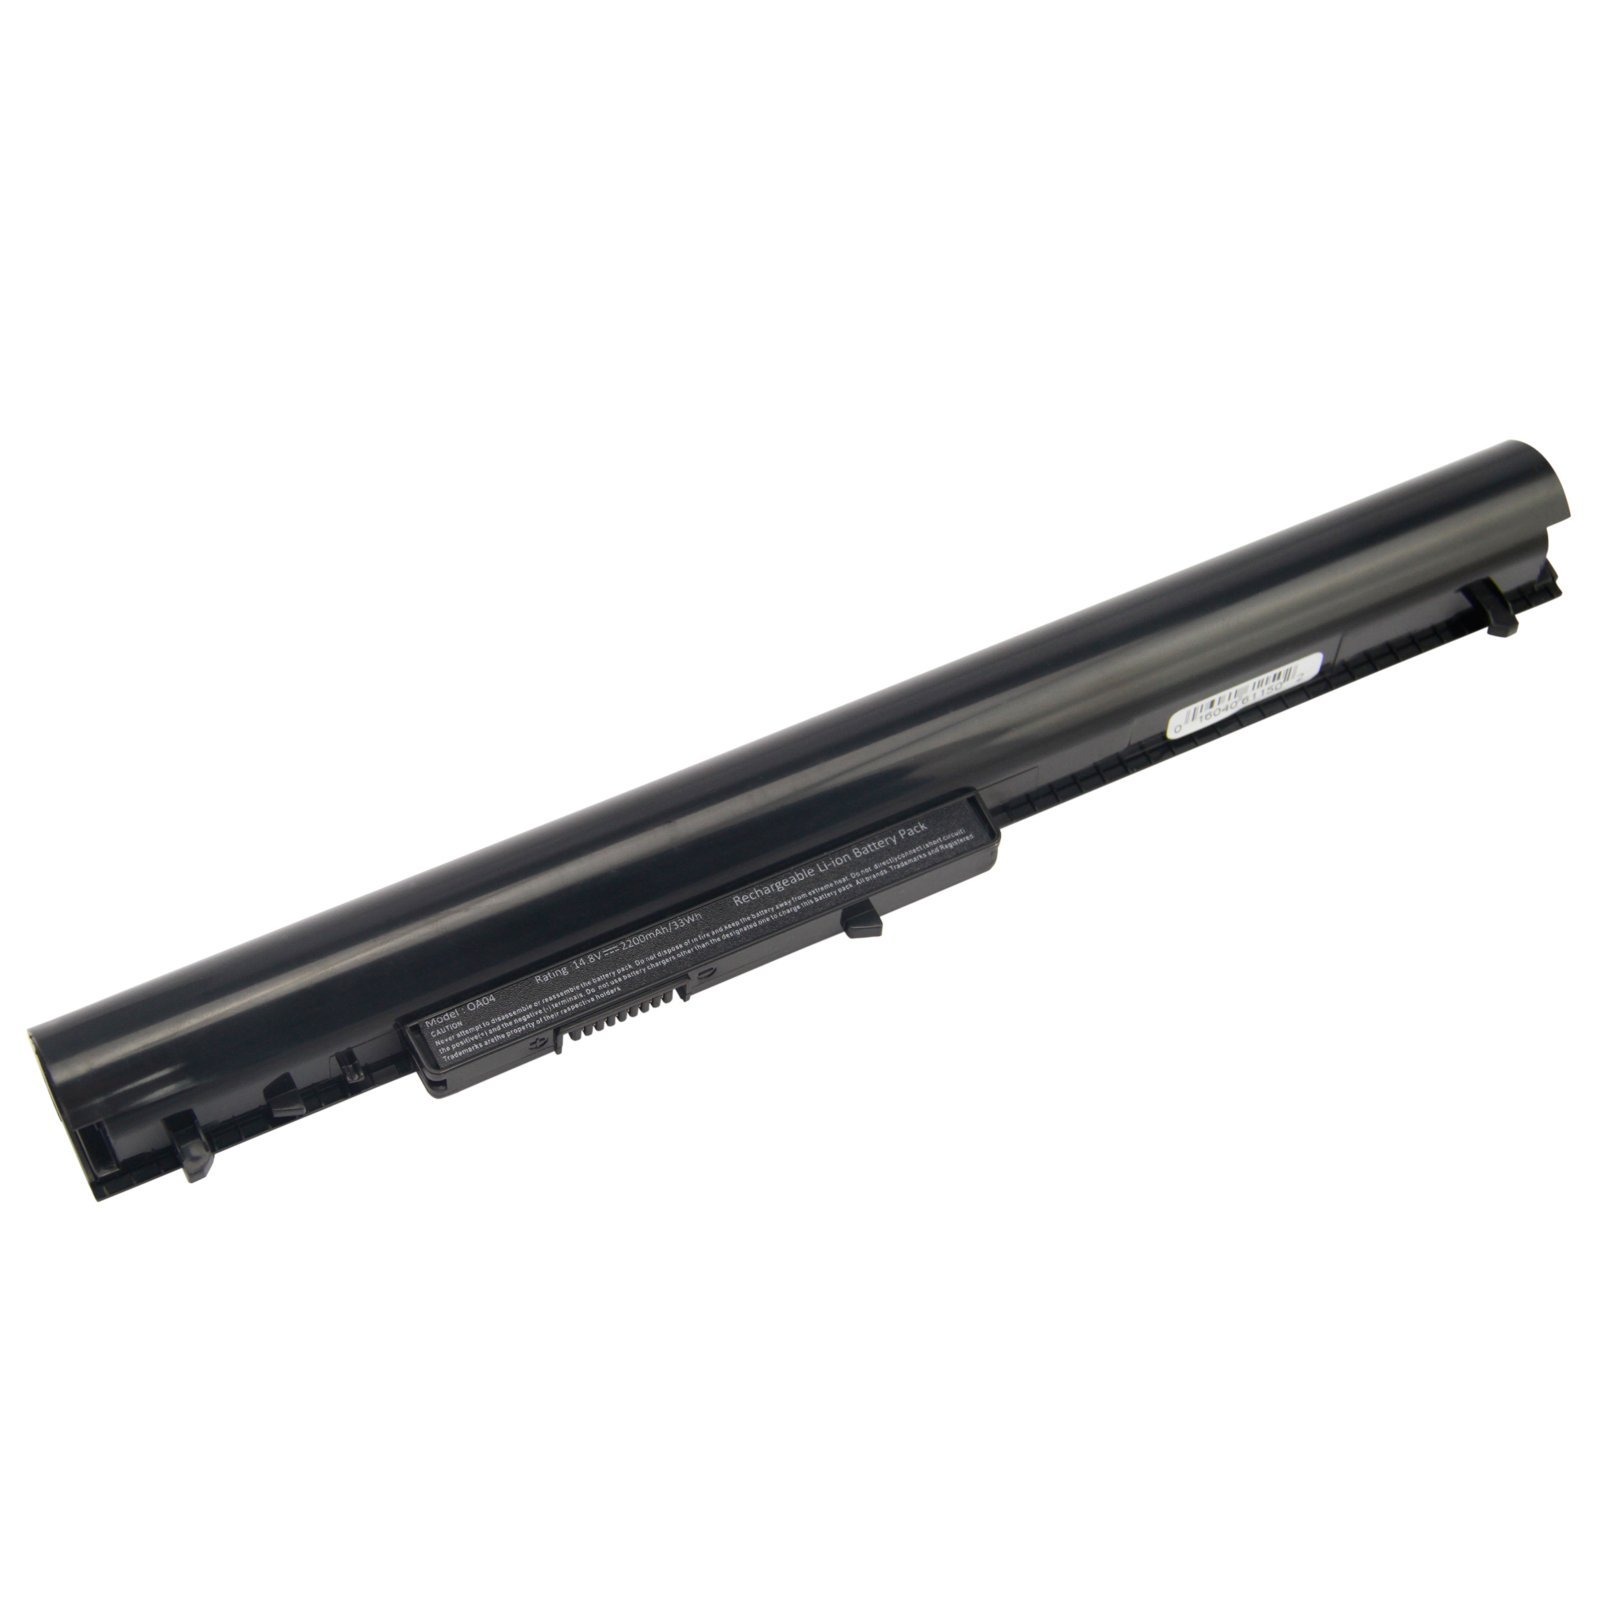 Battery for HP Spare 746641-001 740715-001 746458-421 751906-541 OA04041 HSTNN-LB5Y HSTNN-LB5S J1U99AA HSTNN-PB5Y TPN-F113 TPN-F115 Battery - 12 months warranty(AC Doctor INC)